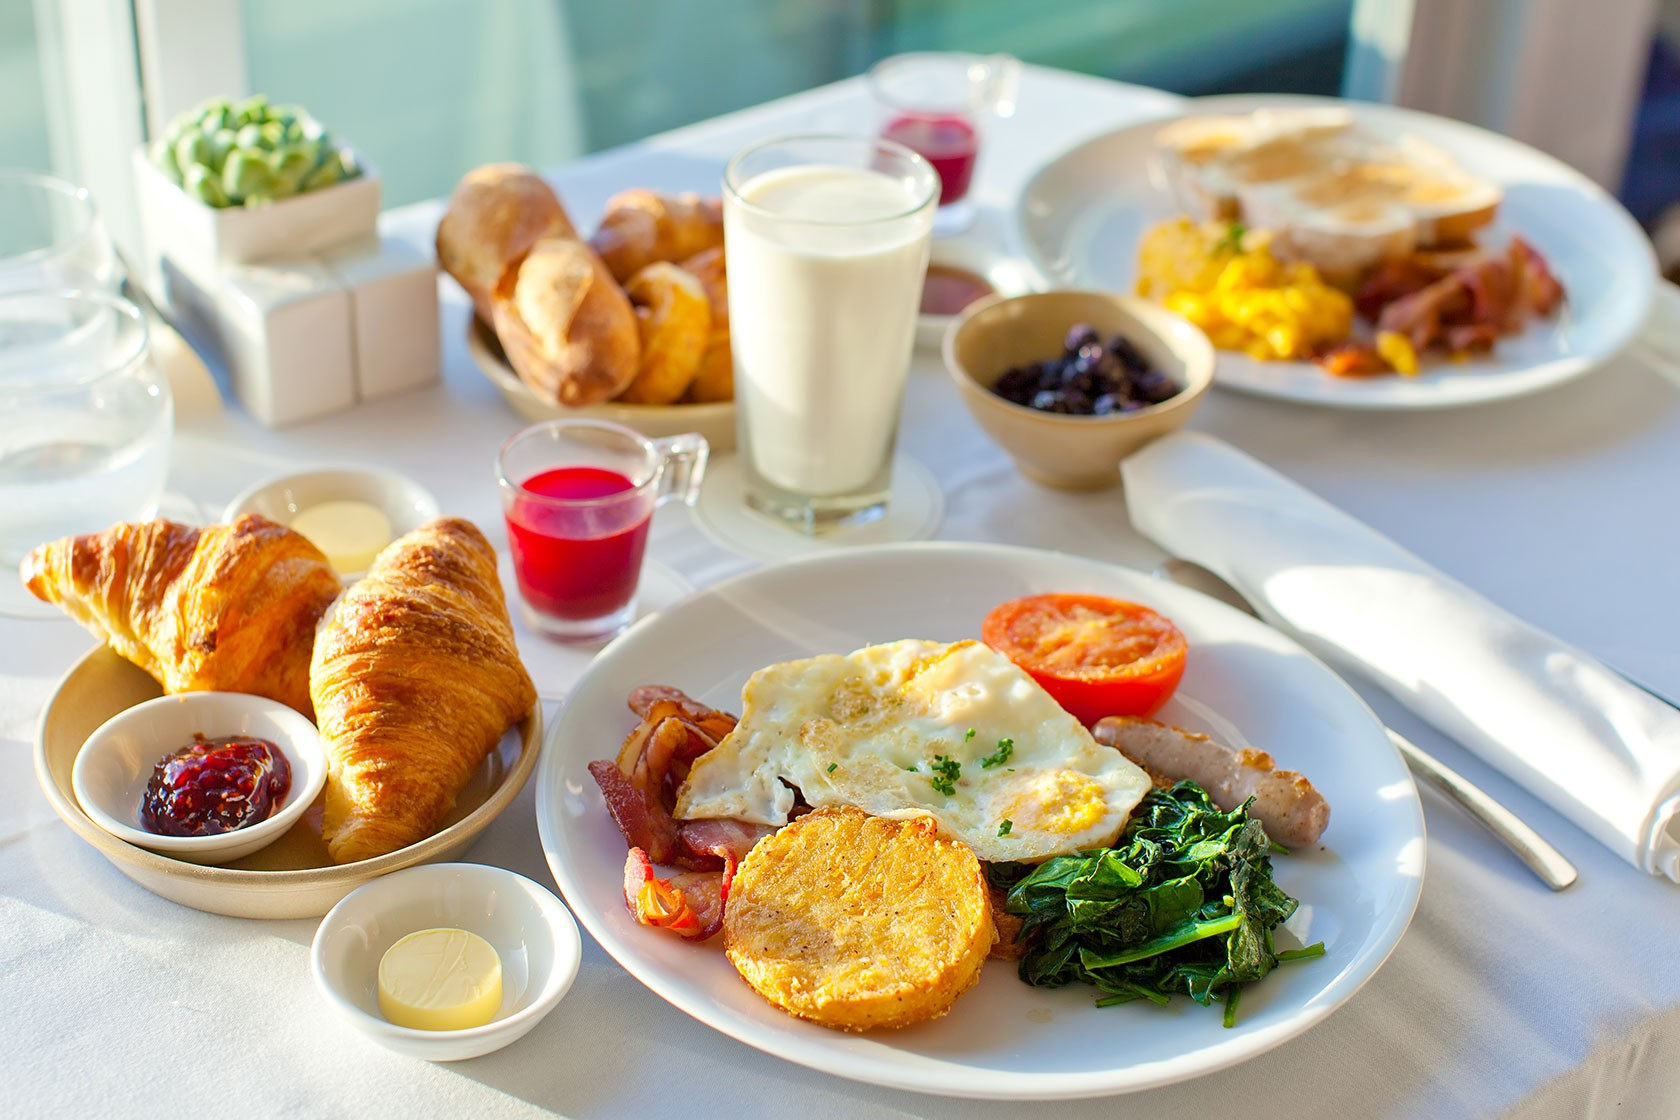 nutrition-myths-and-facts-part-1-breakfast-is-the-most-important-meal-of-the-day-1516724479682.jpg